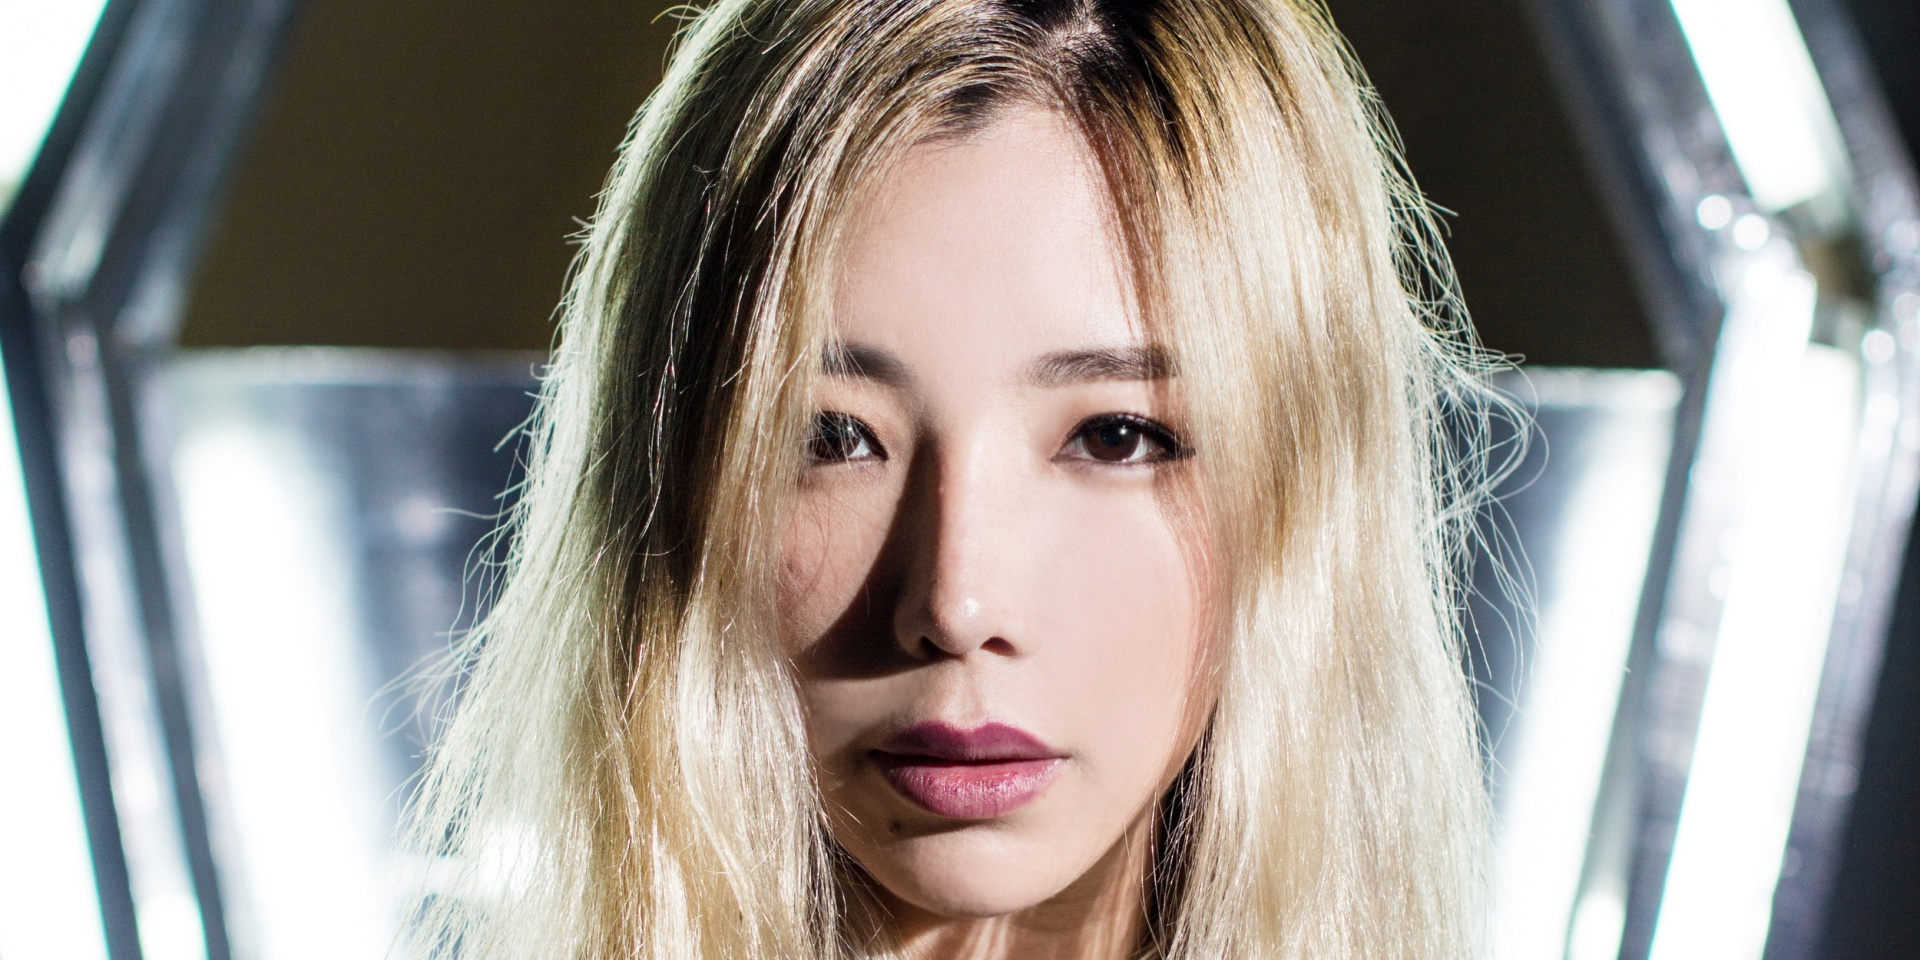 TOKiMONSTA to perform in Singapore and Malaysia next month